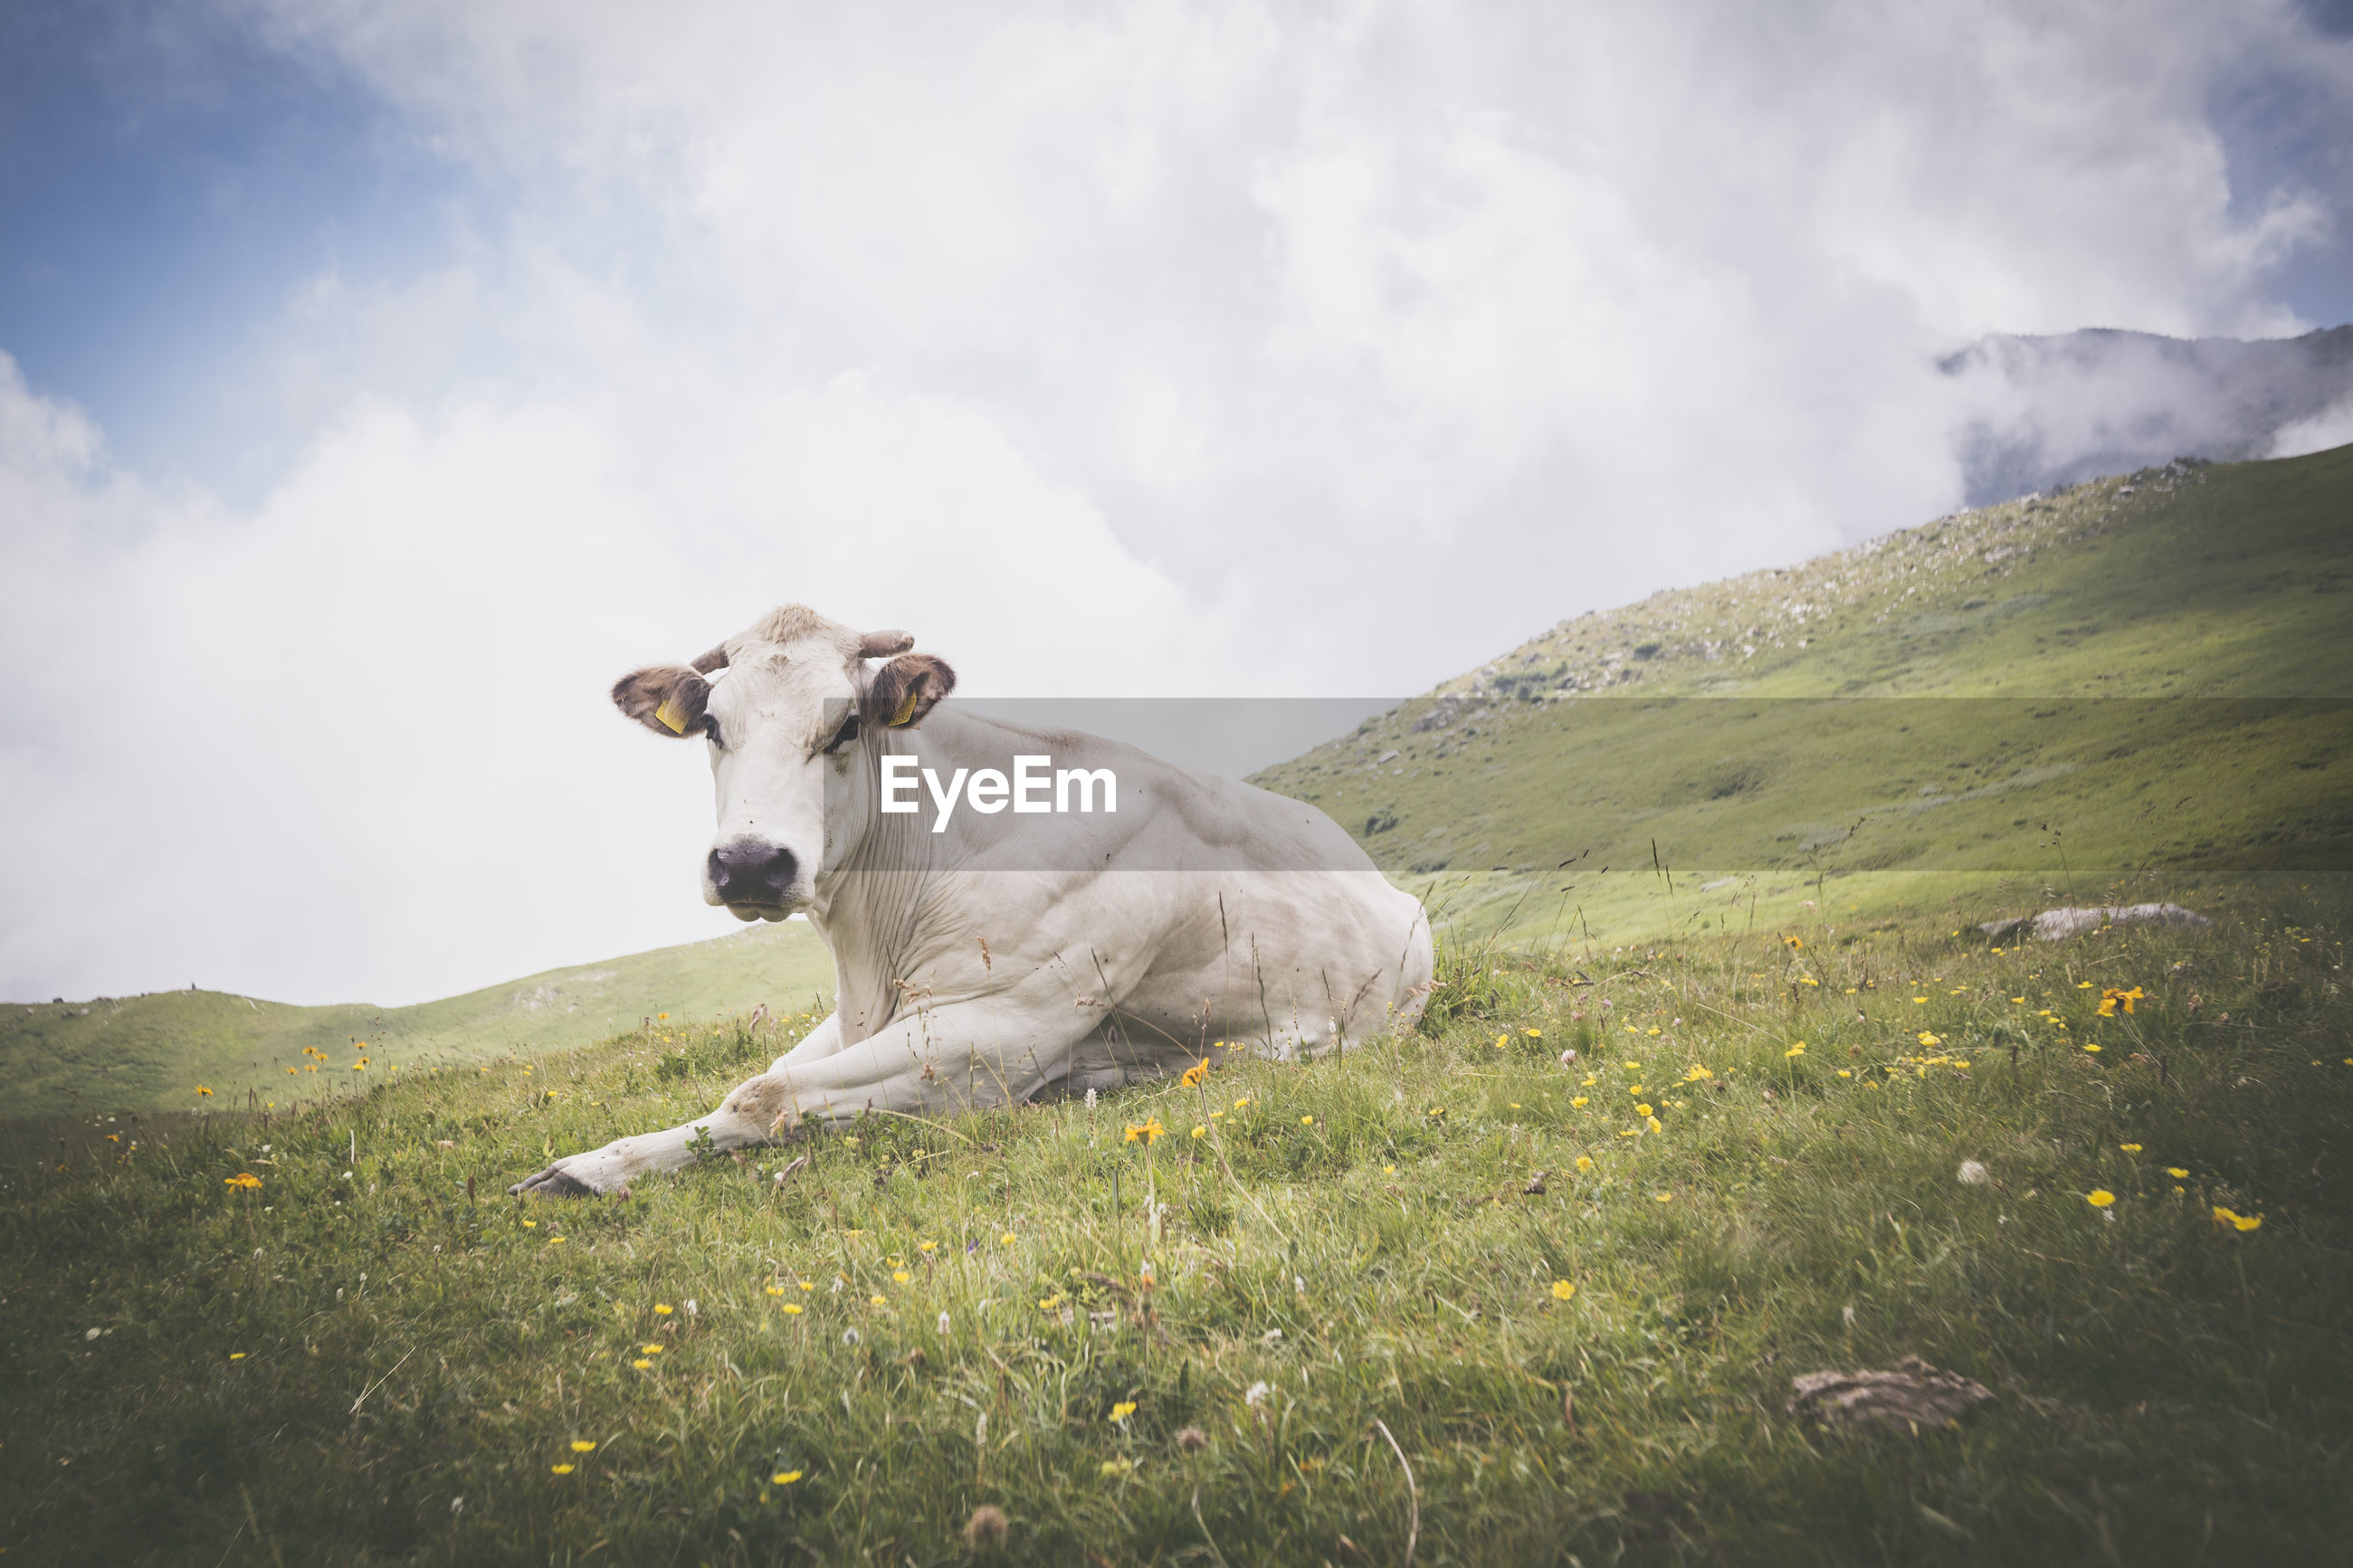 Cow sitting on field against sky